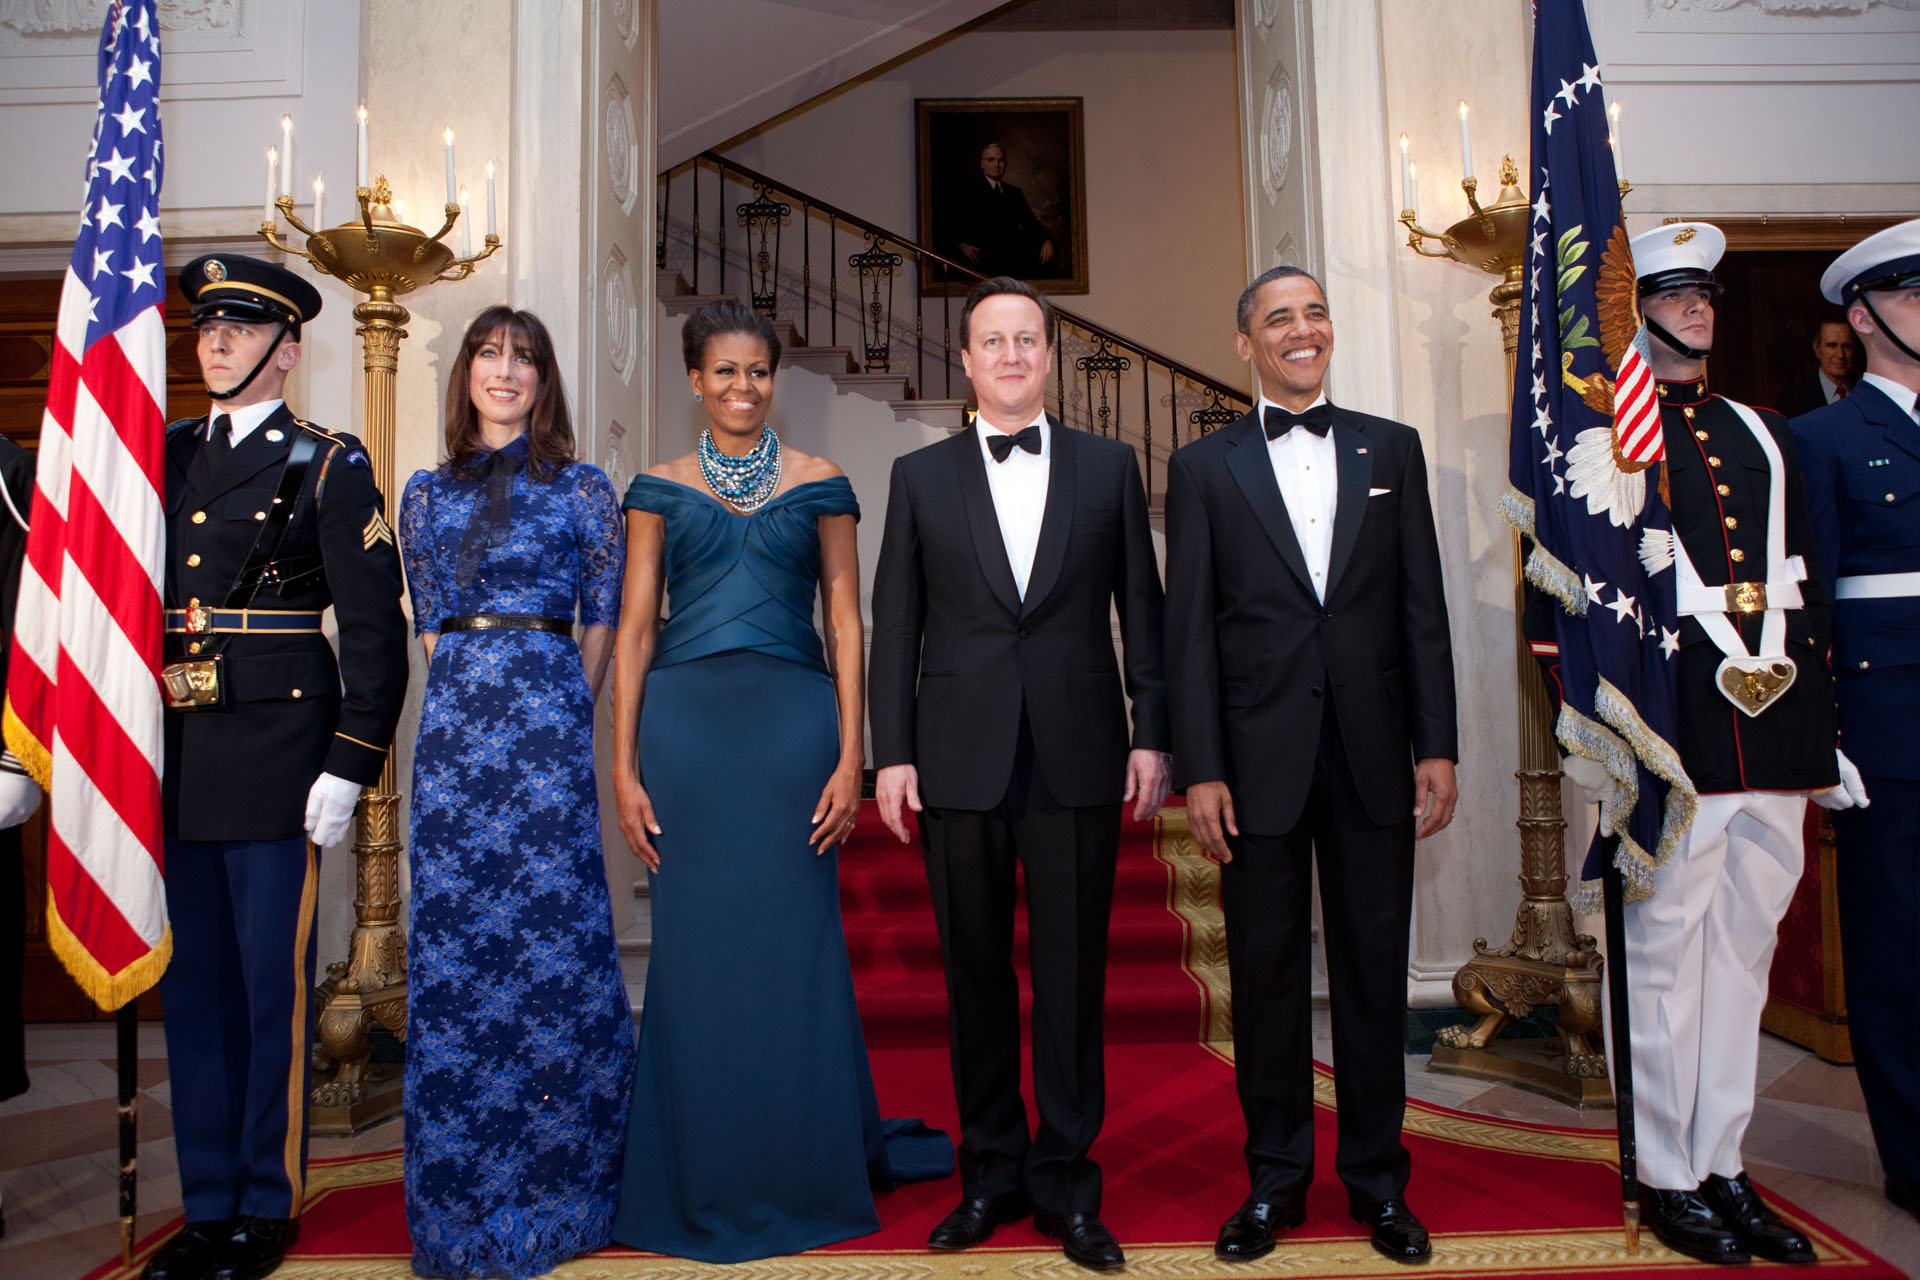 President Obama, the First Lady, Prime Minister Cameron, and Samantha Cameron pose for an official State Dinner photo (March 14, 2012)